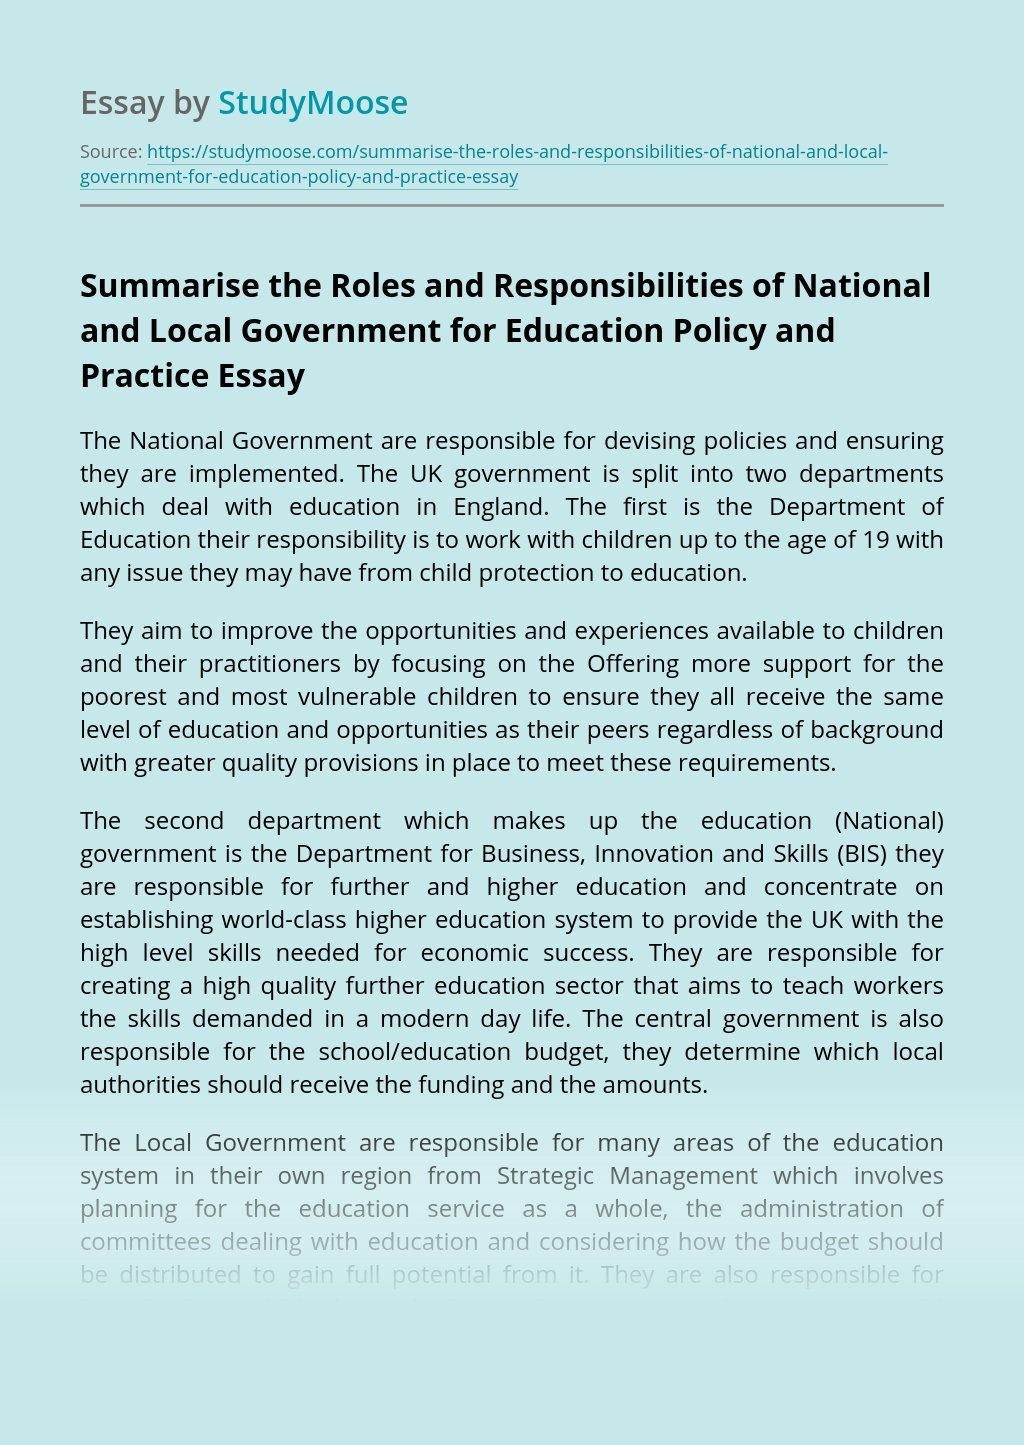 Summarise the Roles and Responsibilities of National and Local Government for Education Policy and Practice